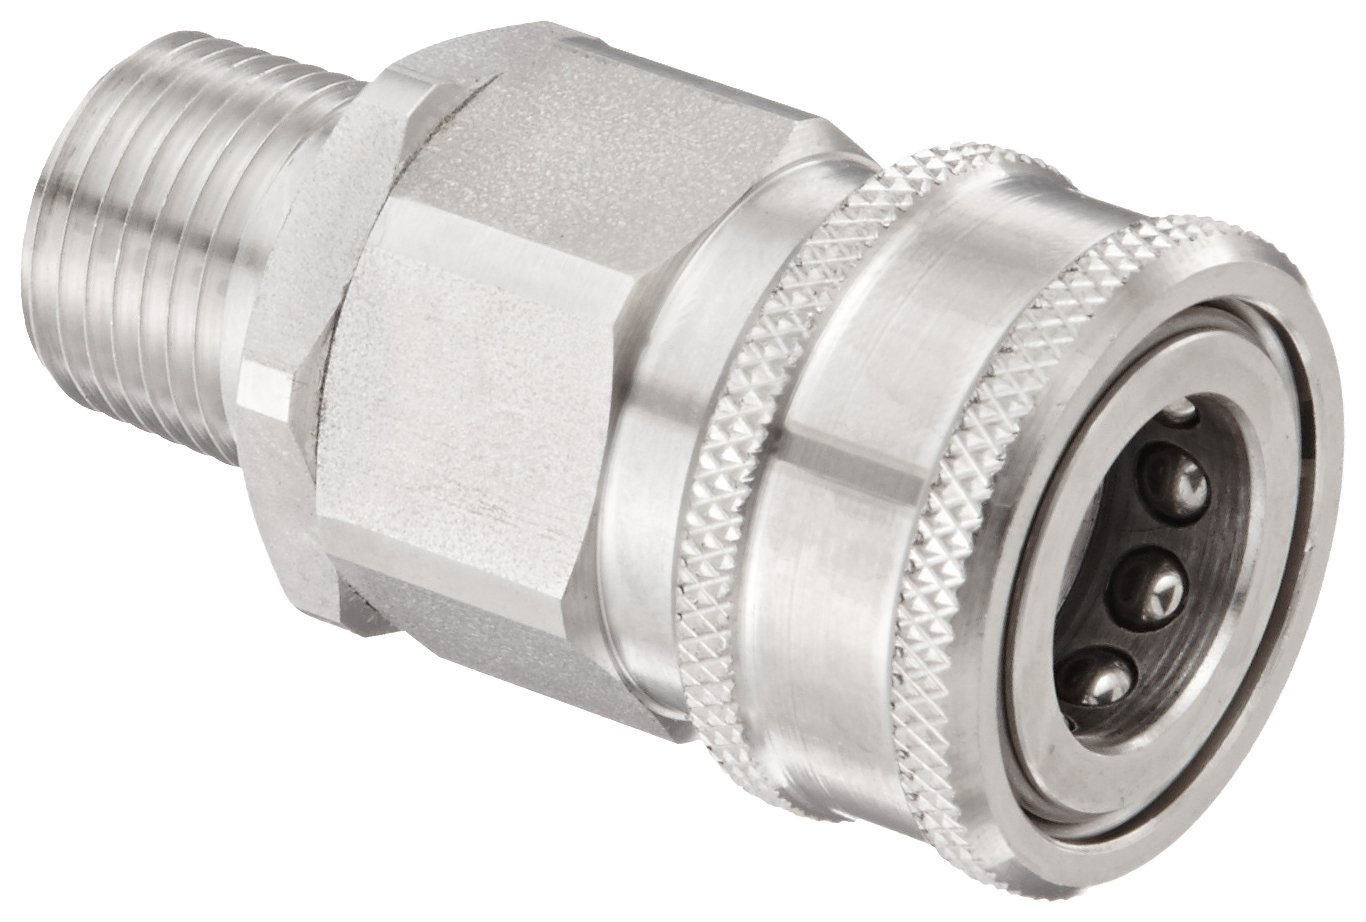 Snap-Tite SVHC8-8M Stainless Steel 316 H-Shape Quick-Disconnect Hose Coupling, Sleeve-Lock Socket, 1/2'' NPTF Male x 1/2'' Coupling Size